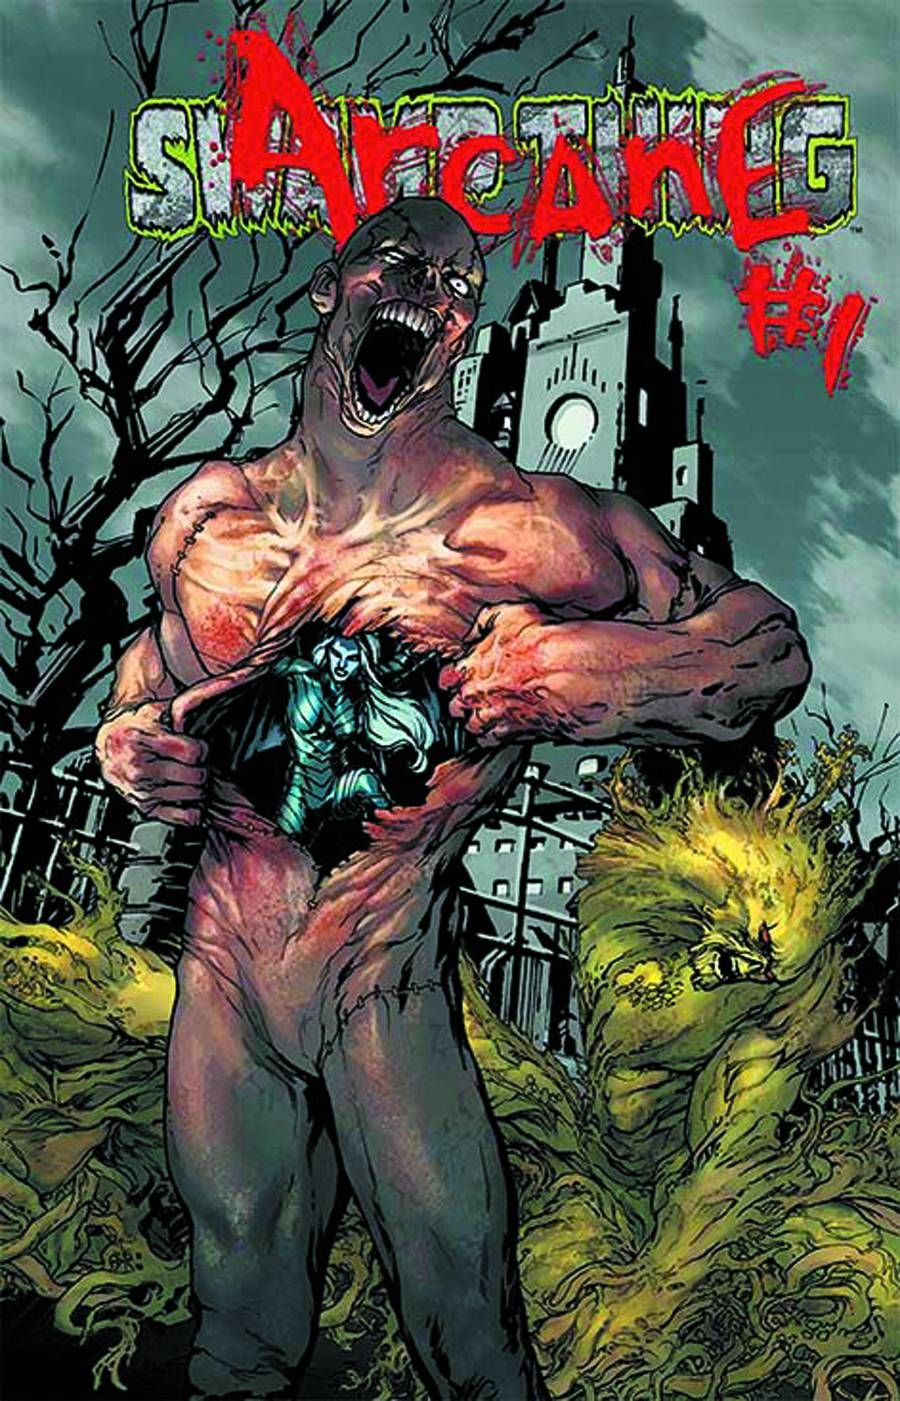 Swamp Thing - Arcane #23.1 (Virgin Cover) #SwampThing #New52 #DC (Cover Artist: Jesus Saiz) On Sale: 9/18/2013